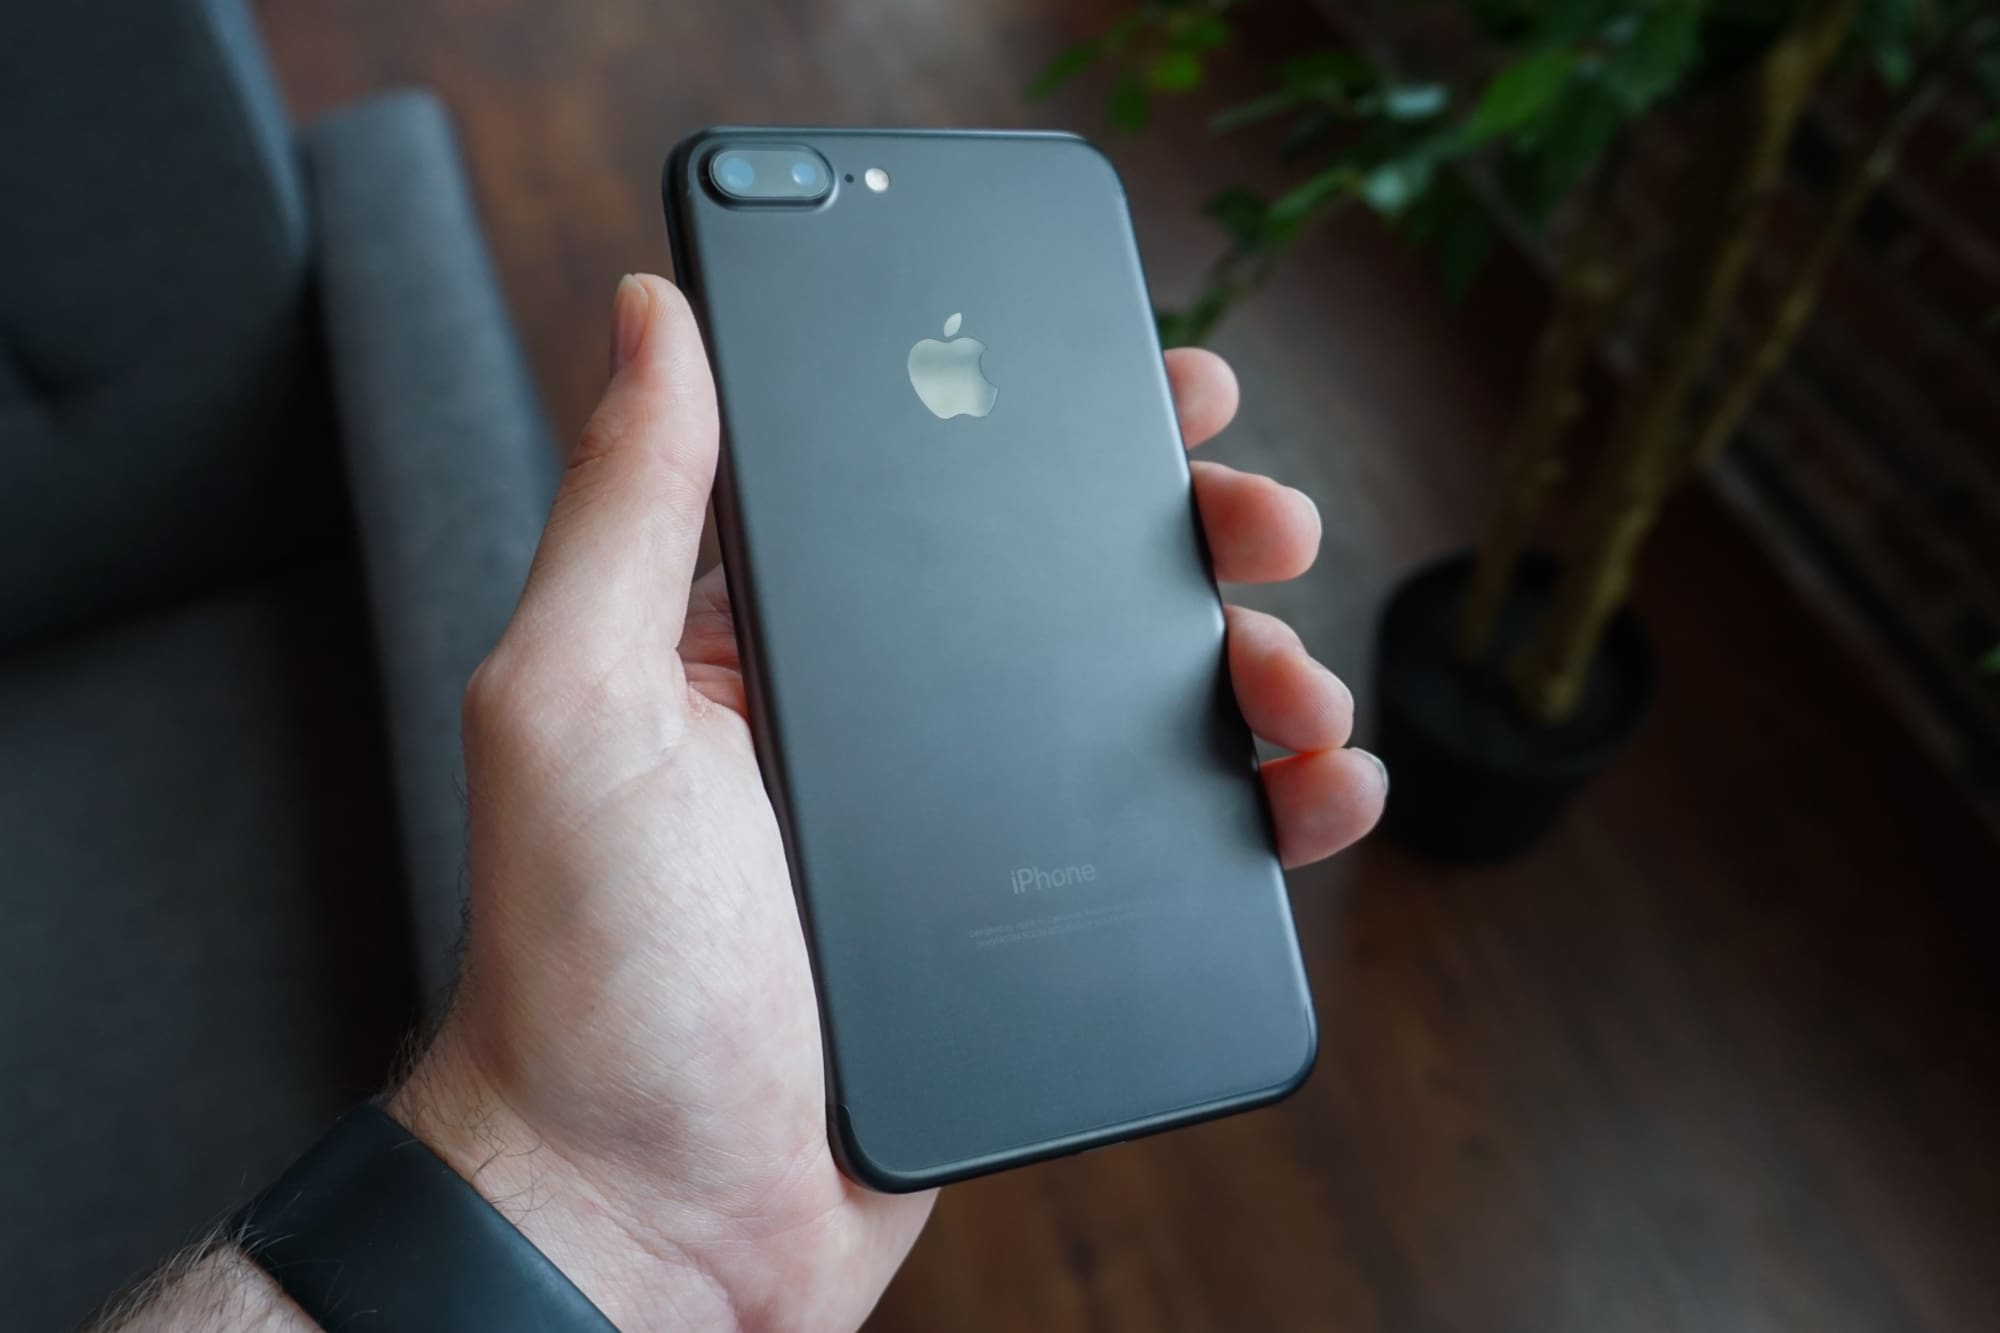 microphone on iPhone 8